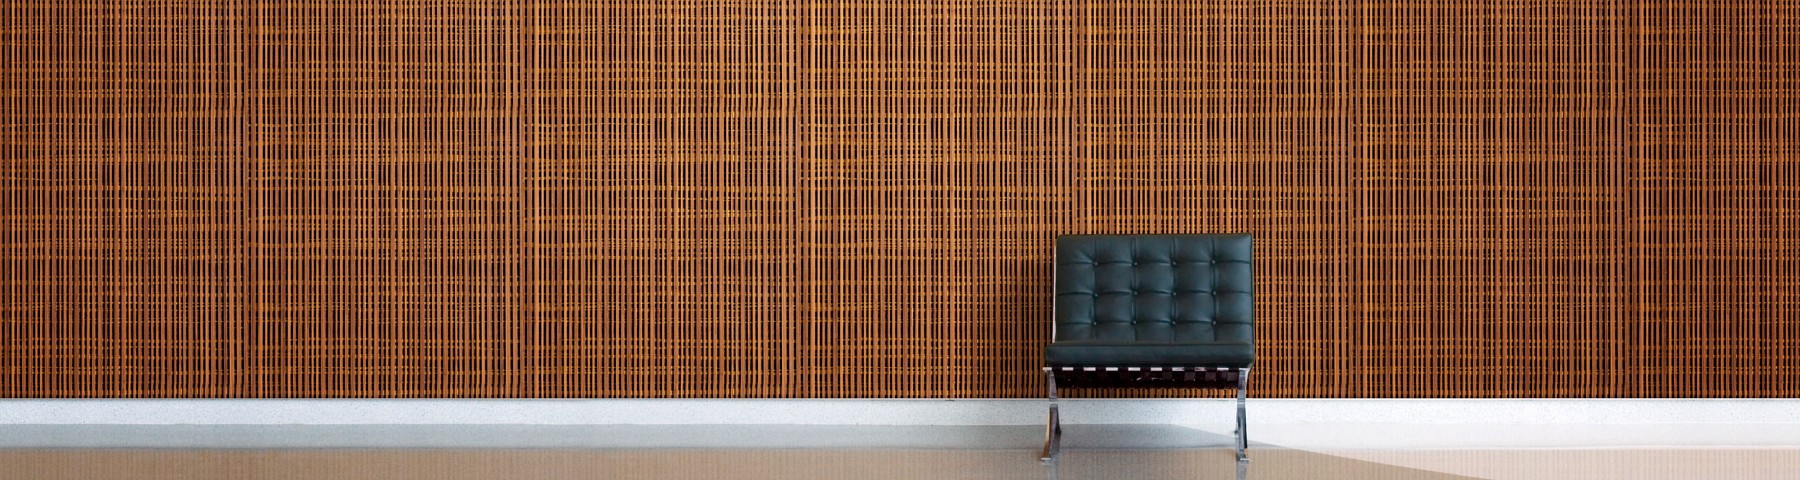 Bamboo acoustic wall panels